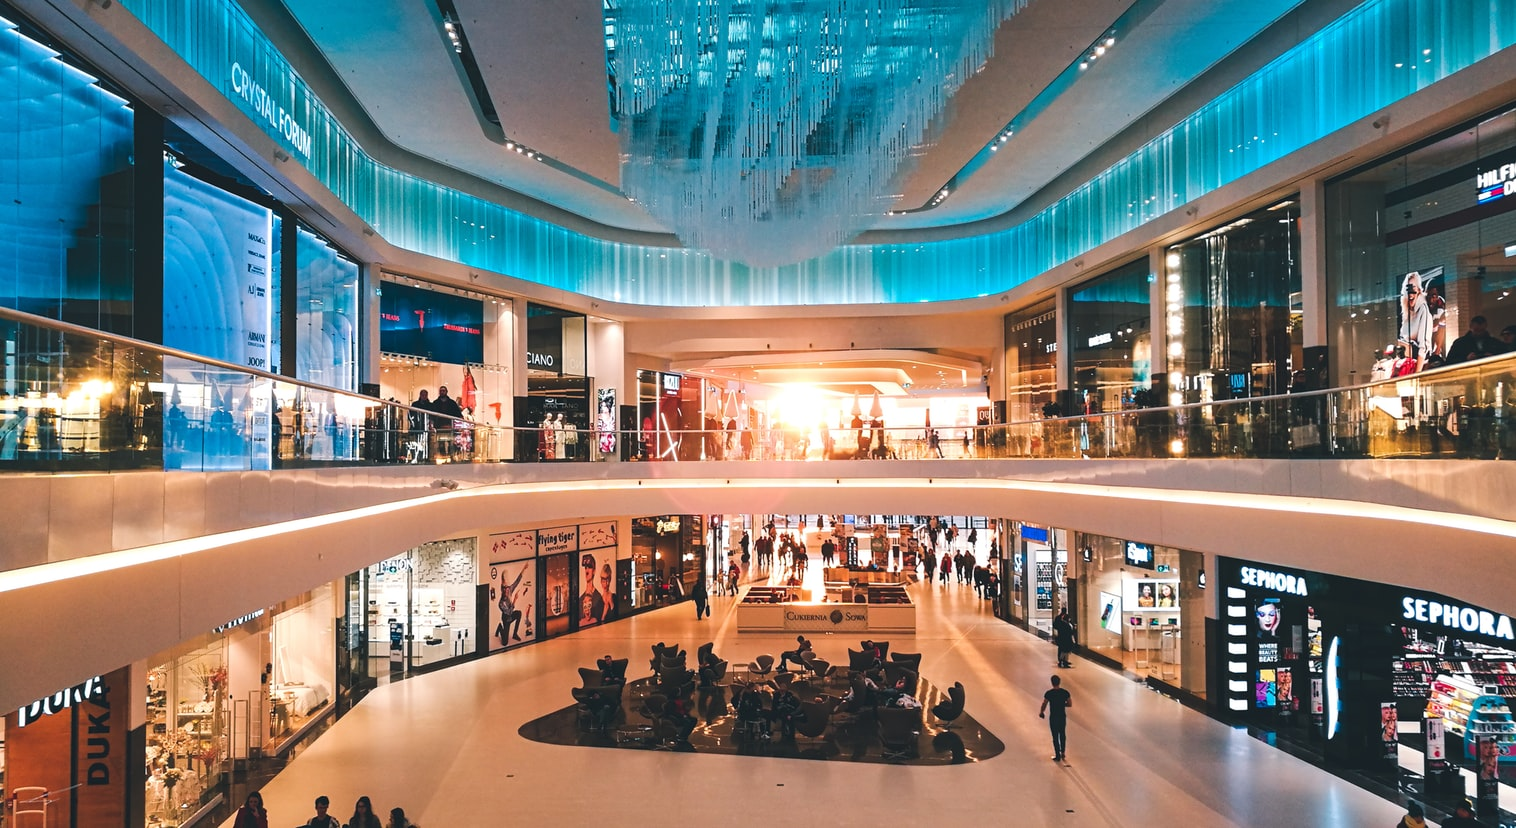 Can AI Save the Retail Industry? - Brian Solis